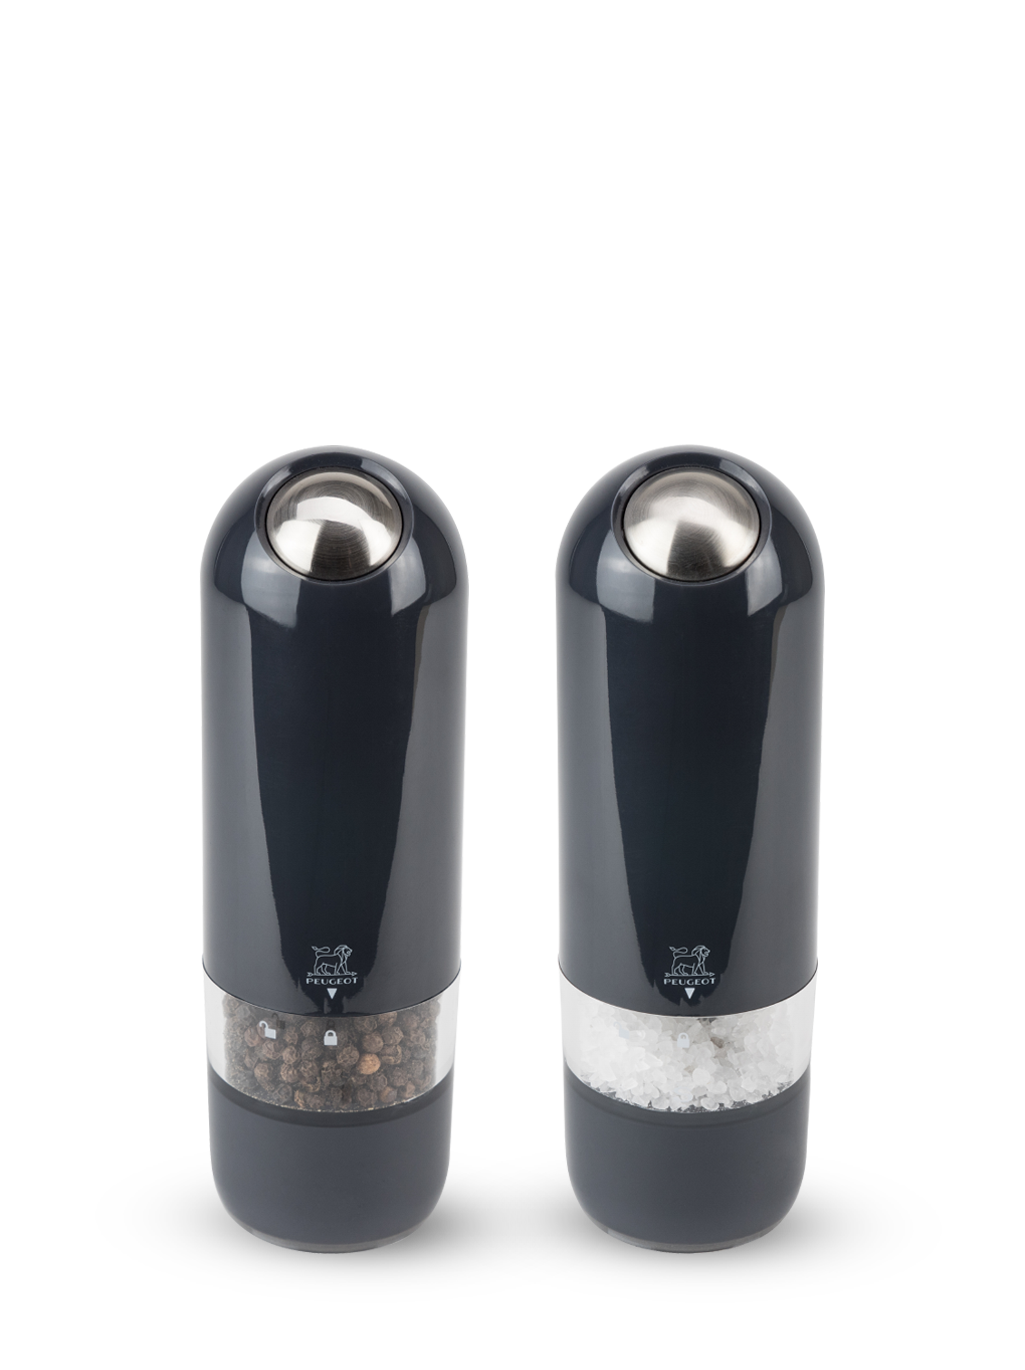 Peugeot Alaska Duo Salt Mill & Pepper Mill Set in Quartz (Black) 17cm